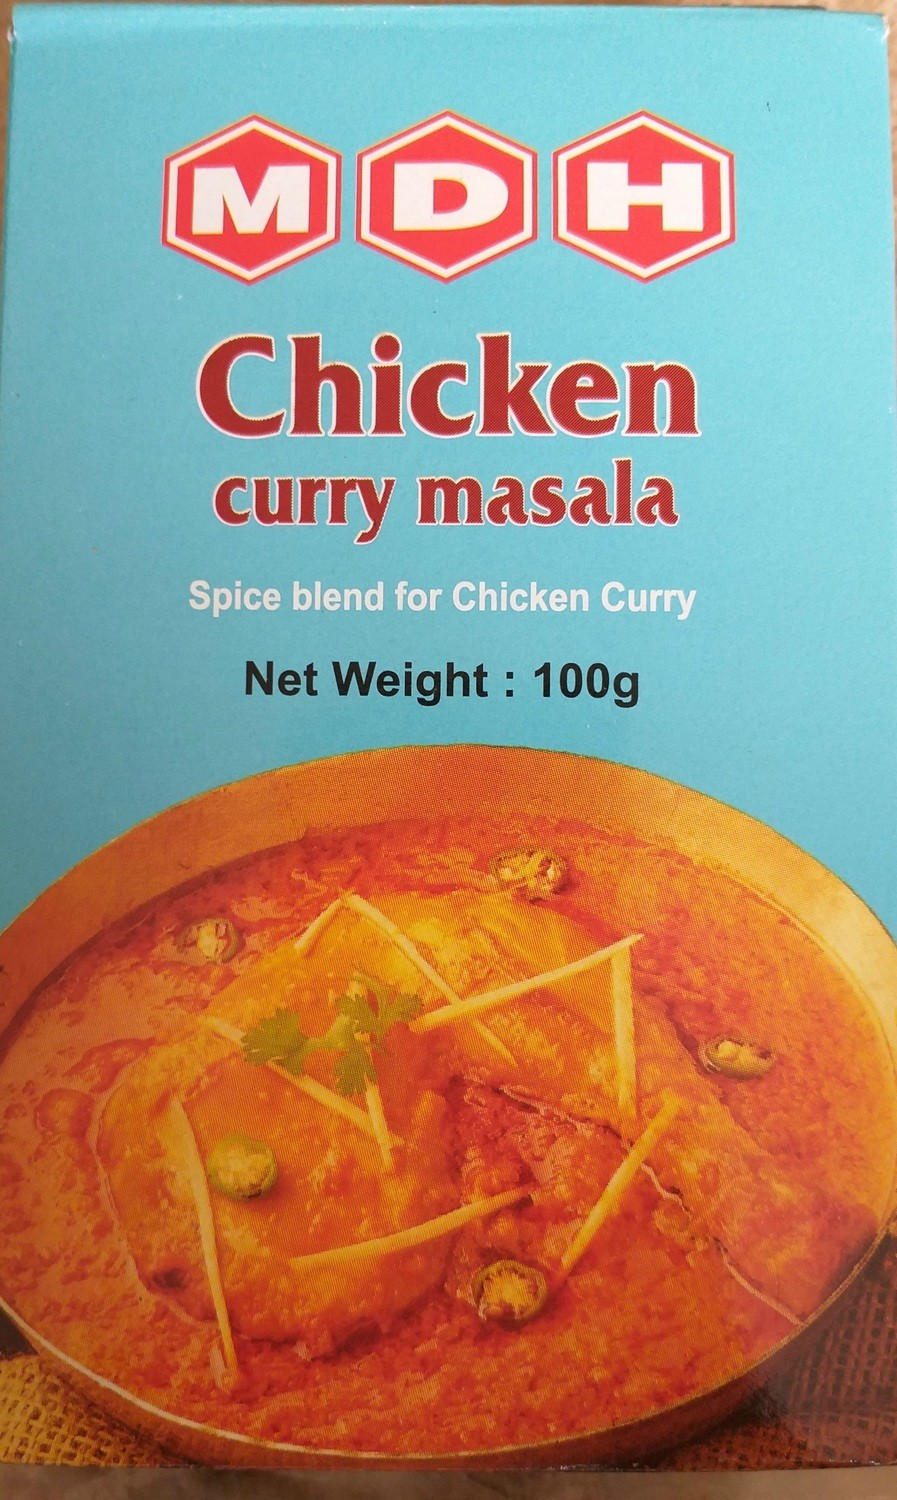 MDH CHICKEN CURRY MASALA 100GMS